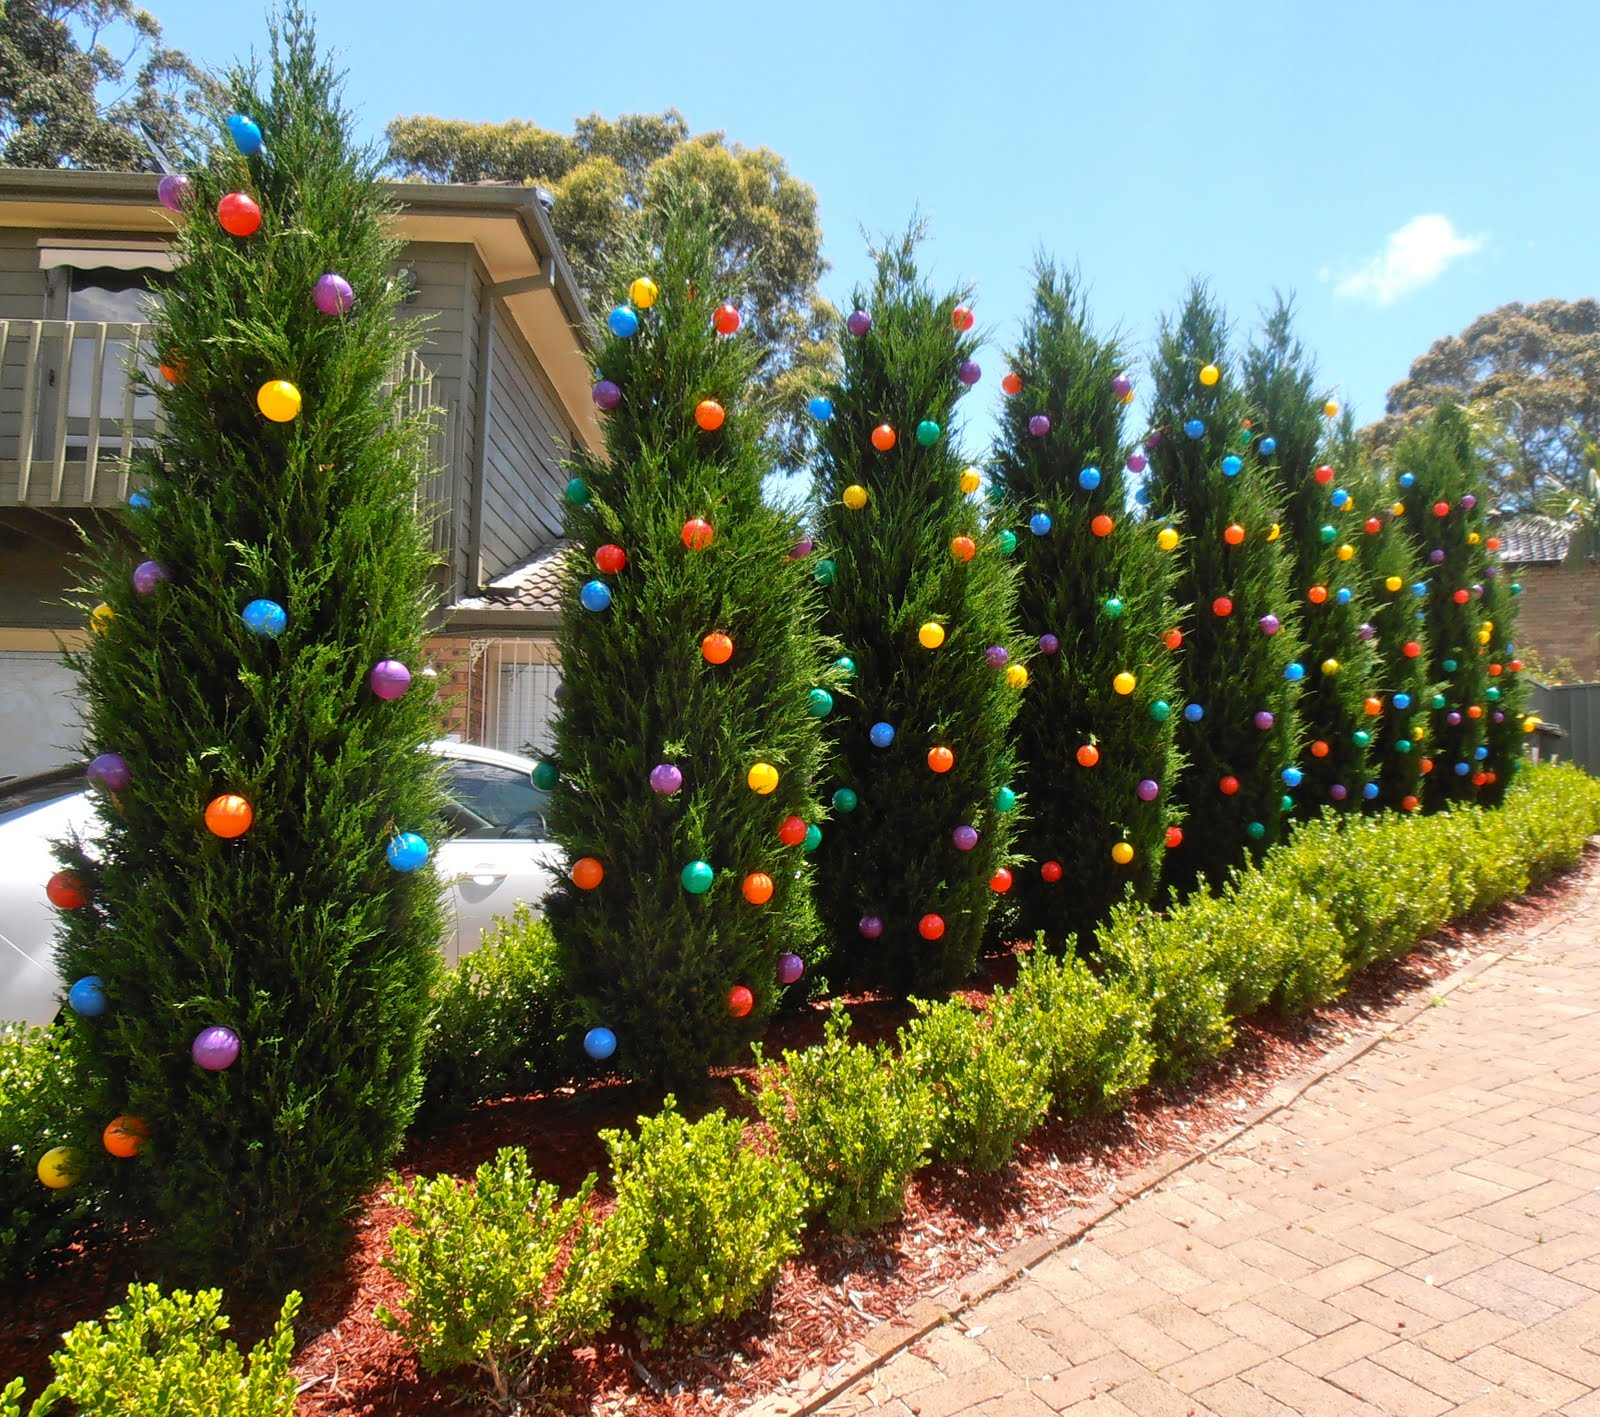 Giggleberry Creations!: Decorating Our Outdoor 'Christmas